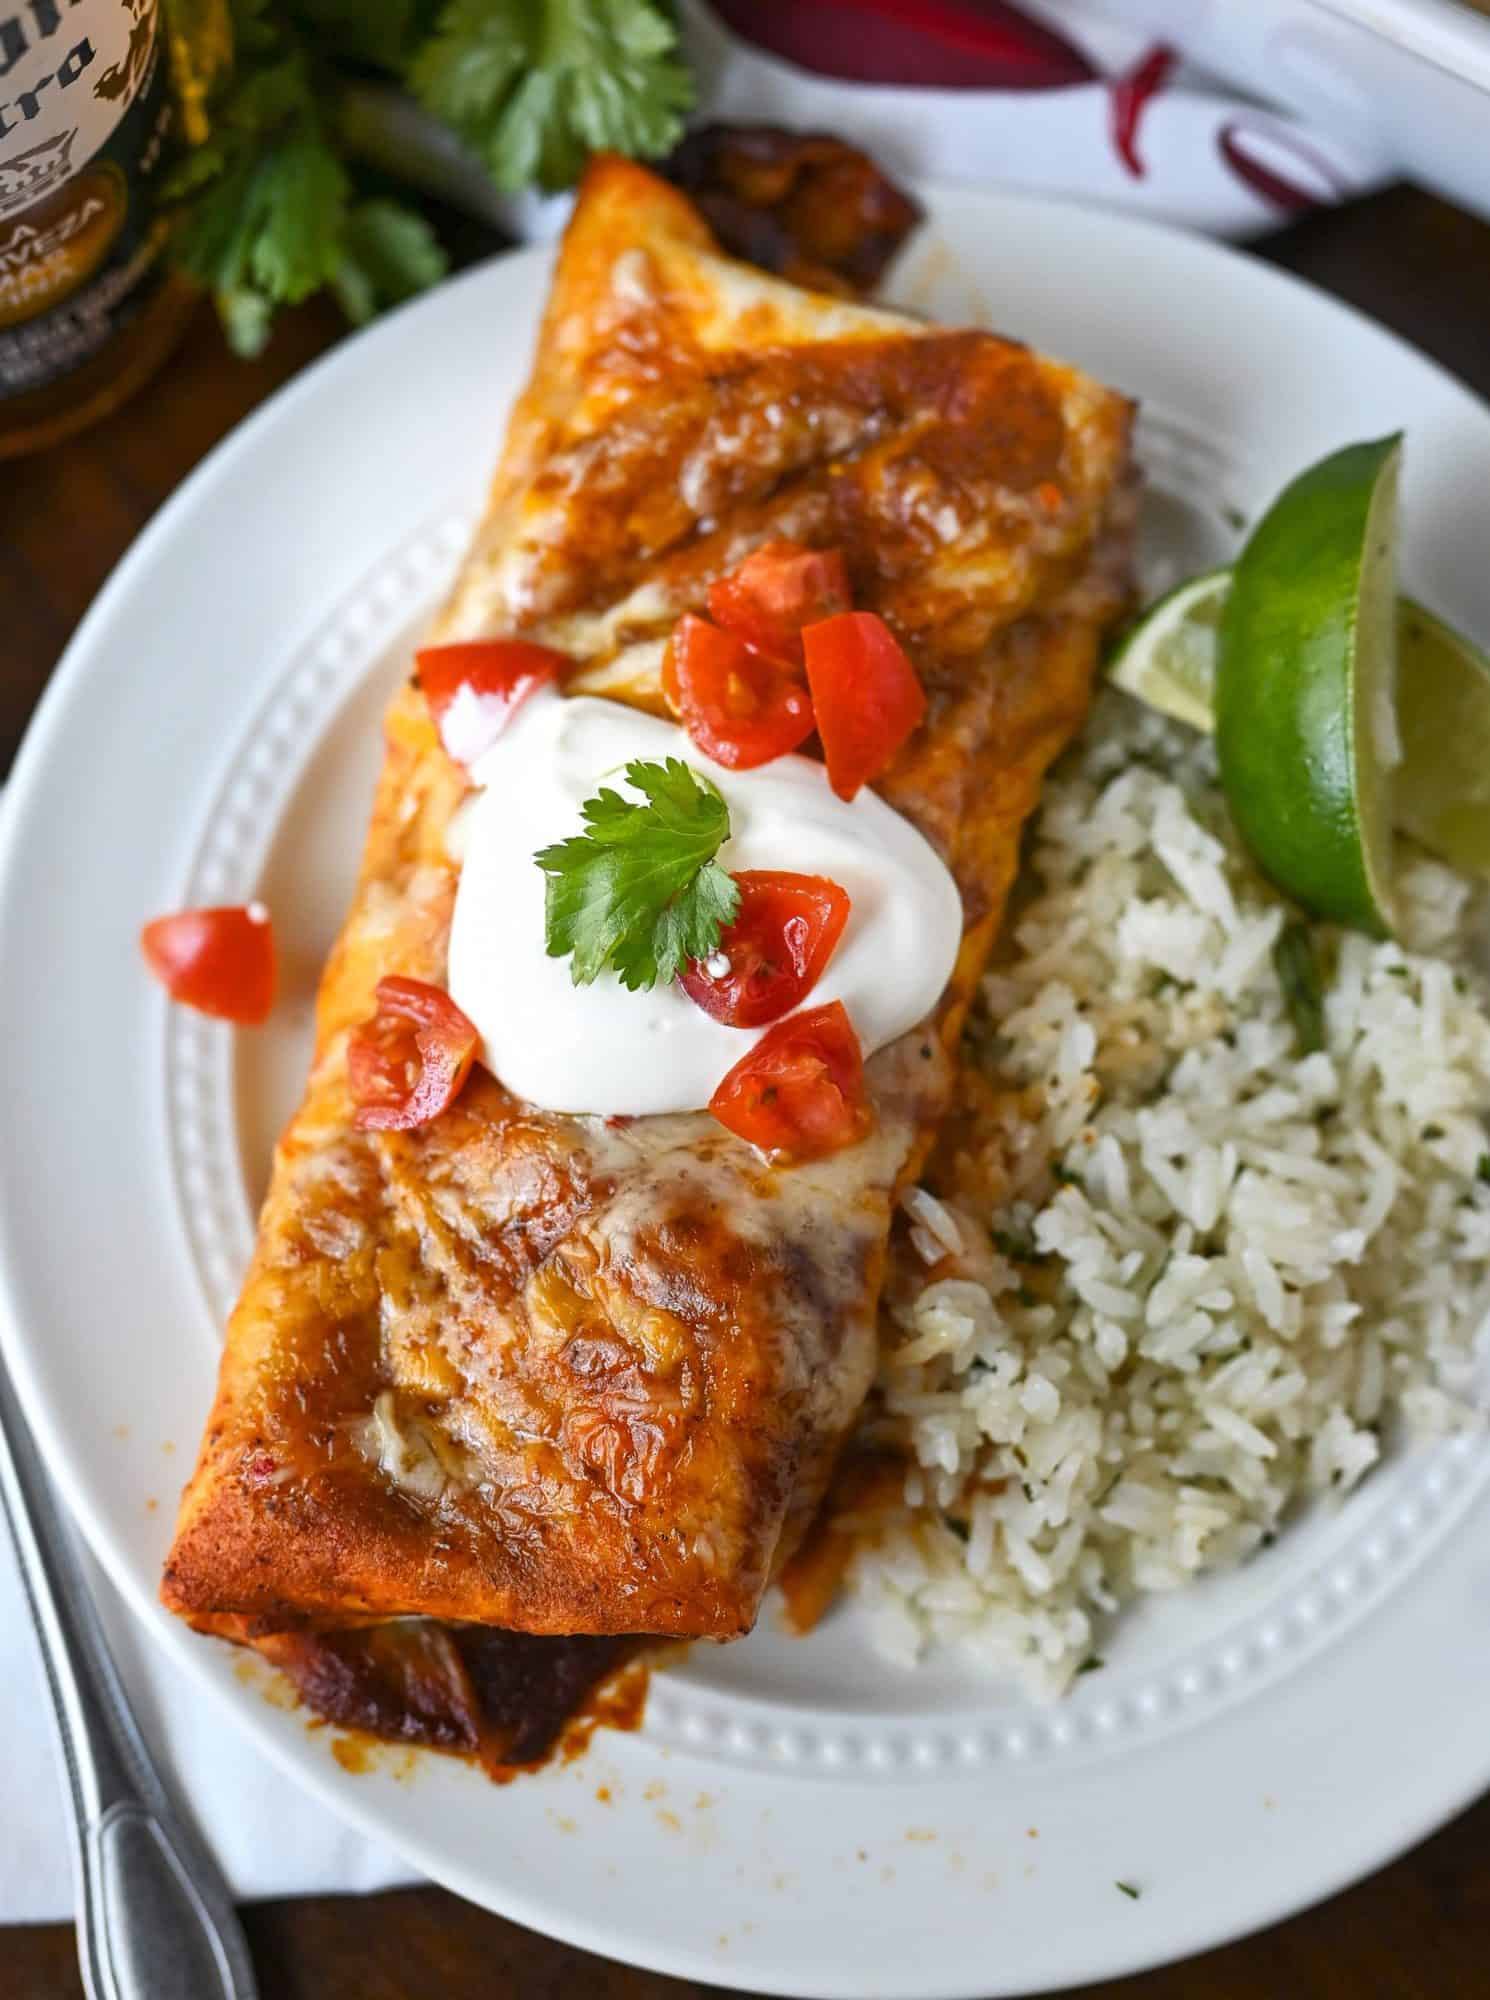 Beef burrito on a white plate, with sourcream and diced tomatoes on top. With a side of cilantro rice and slices of limes.